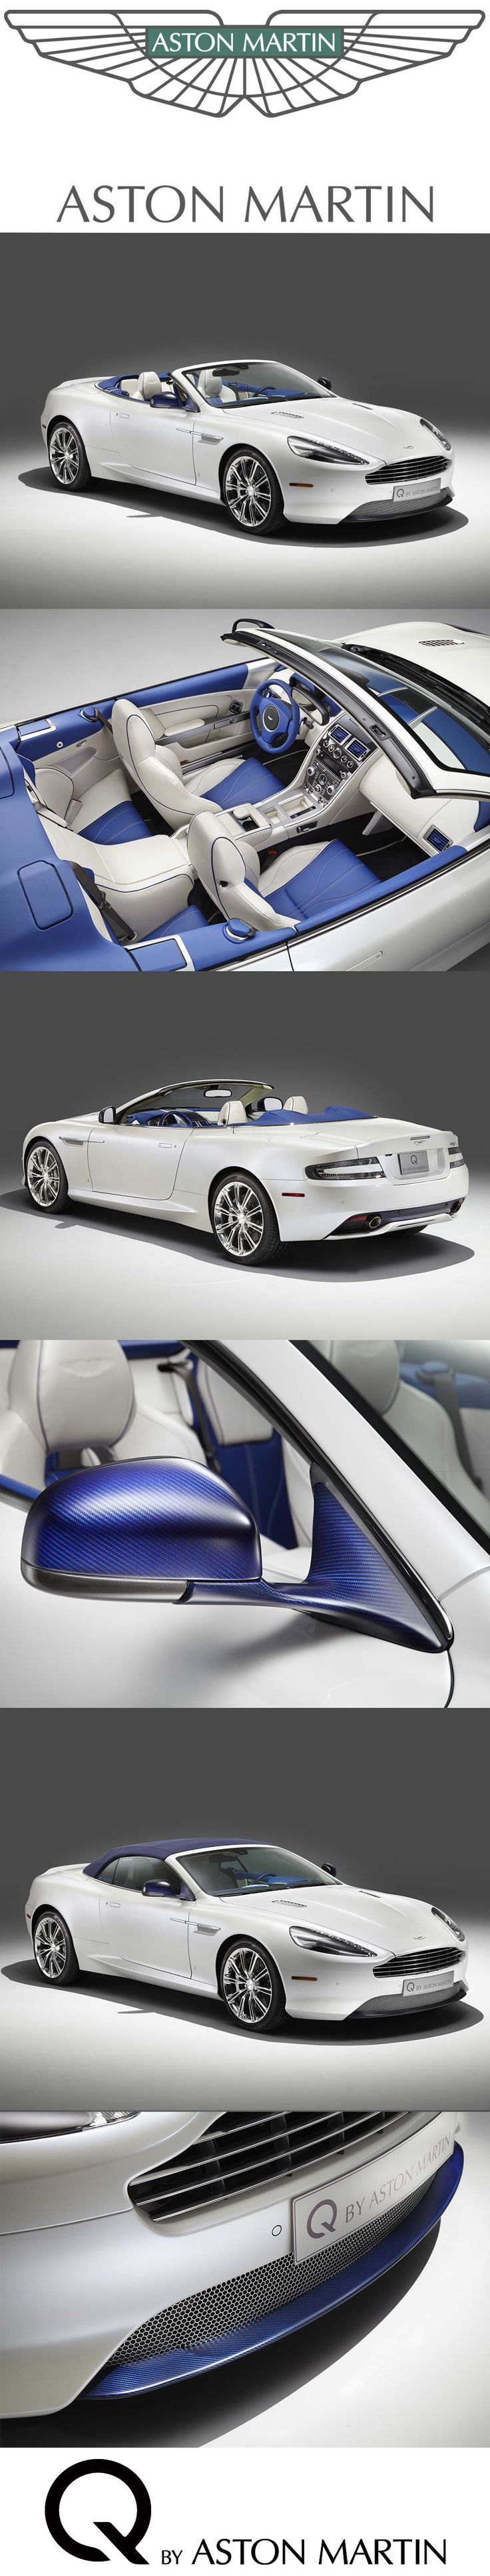 Created with two guiding principles, elegance and purity, this DB9 Volante was commissioned by official dealer Aston Martin Dallas. Challenged to use only white and blue on both exterior and interior, our design team have created a specification which stays true to DB9's timeless elegance but offers a new level of visual distinction. Discover Q by Aston Martin: http://www.astonmartin.com/q #AstonMartin #Q #Vanquish #Personalised